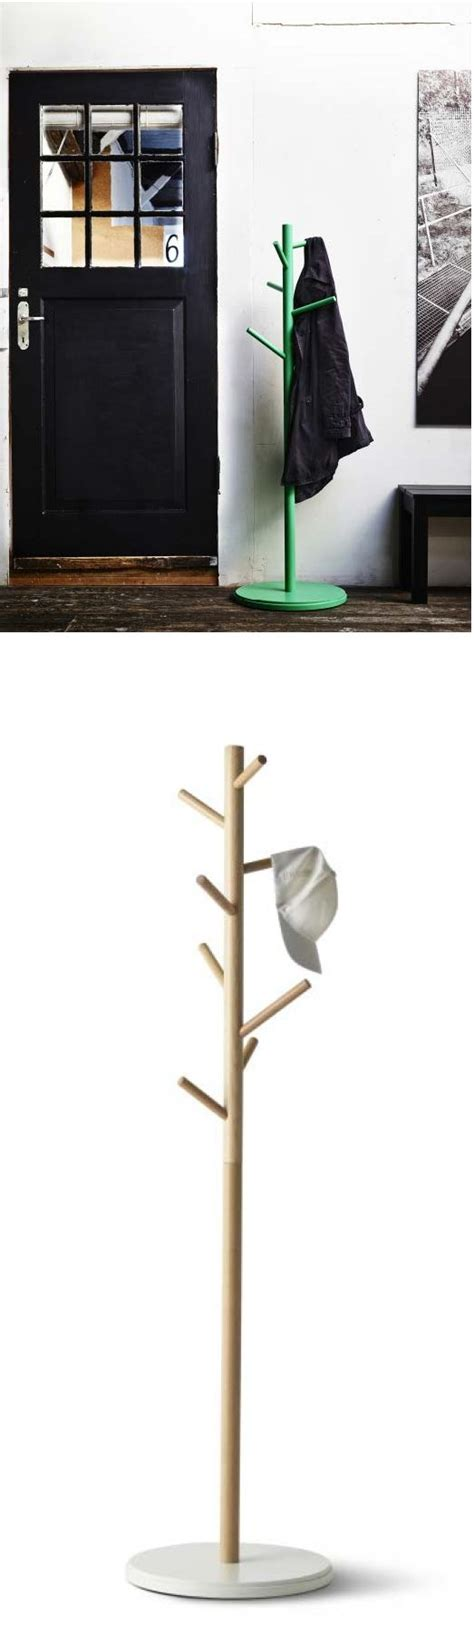 coat rack ikea ikea ps 2014 hat and coat stand quot i wanted to make an easy